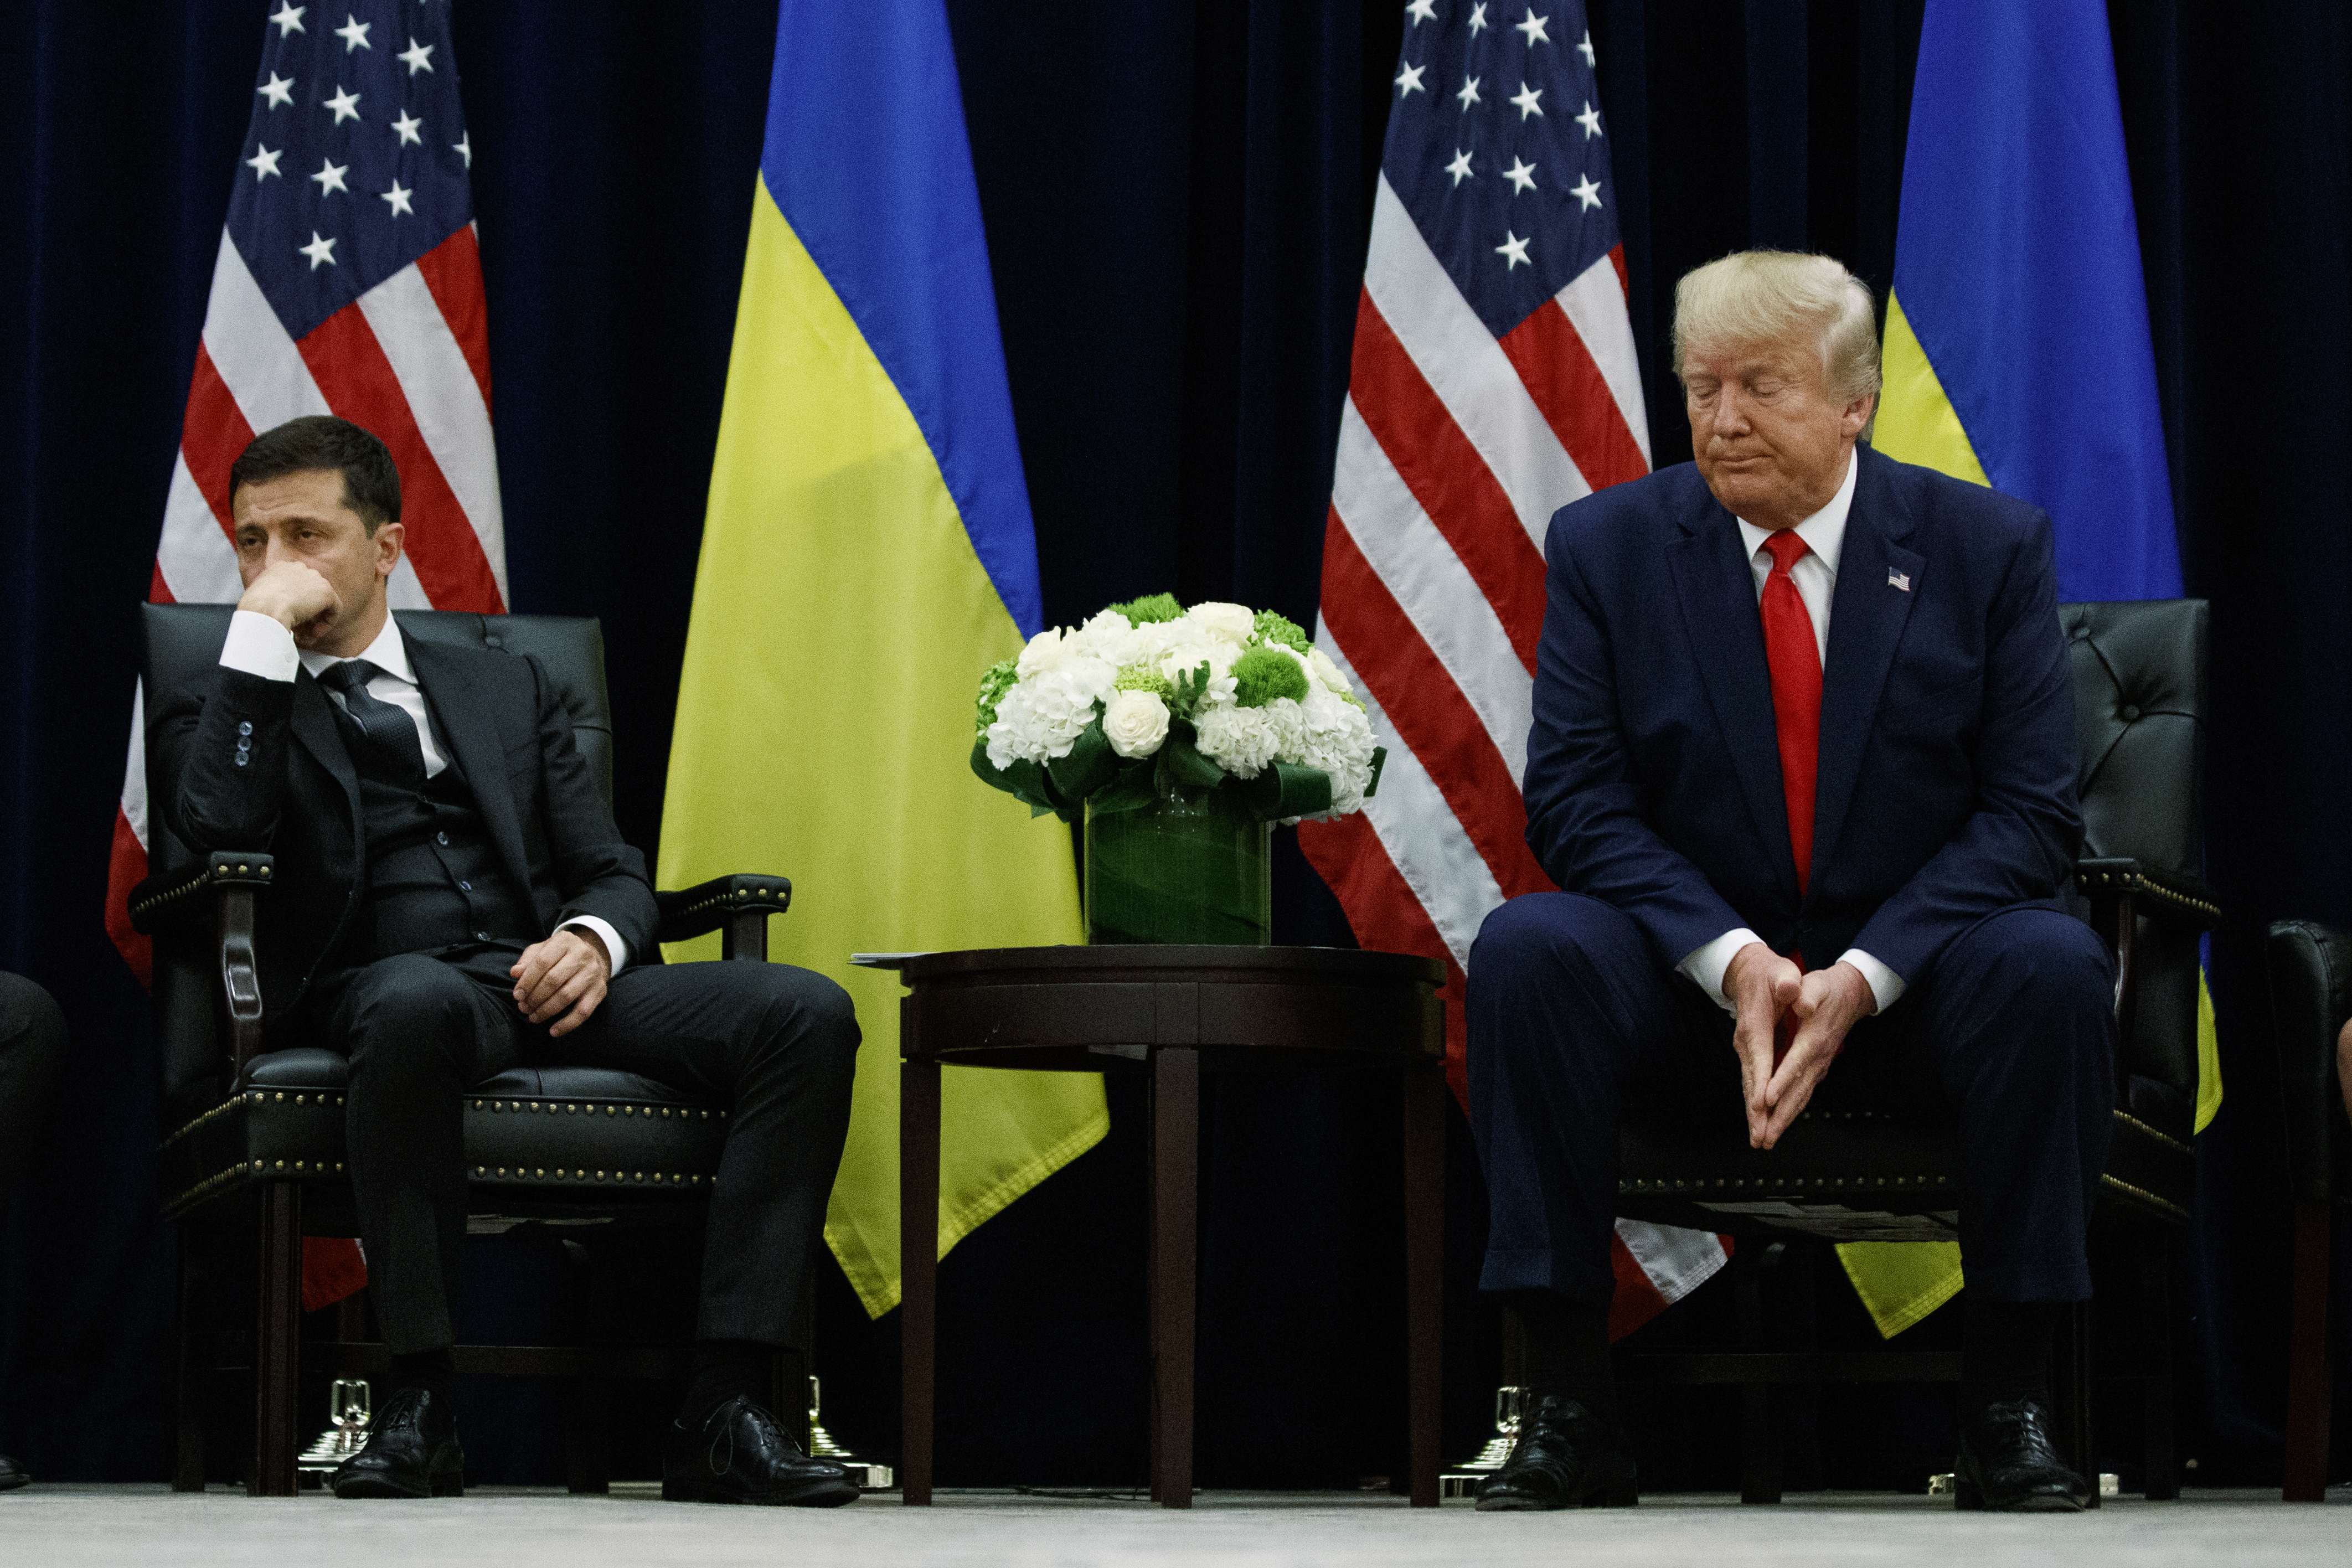 President Donald Trump meets with Ukrainian President Volodymyr Zelenskiy at the InterContinental Barclay New York hotel during the United Nations General Assembly, Wednesday, Sept. 25, 2019, in New York. (Photo: Evan Vucci/AP)